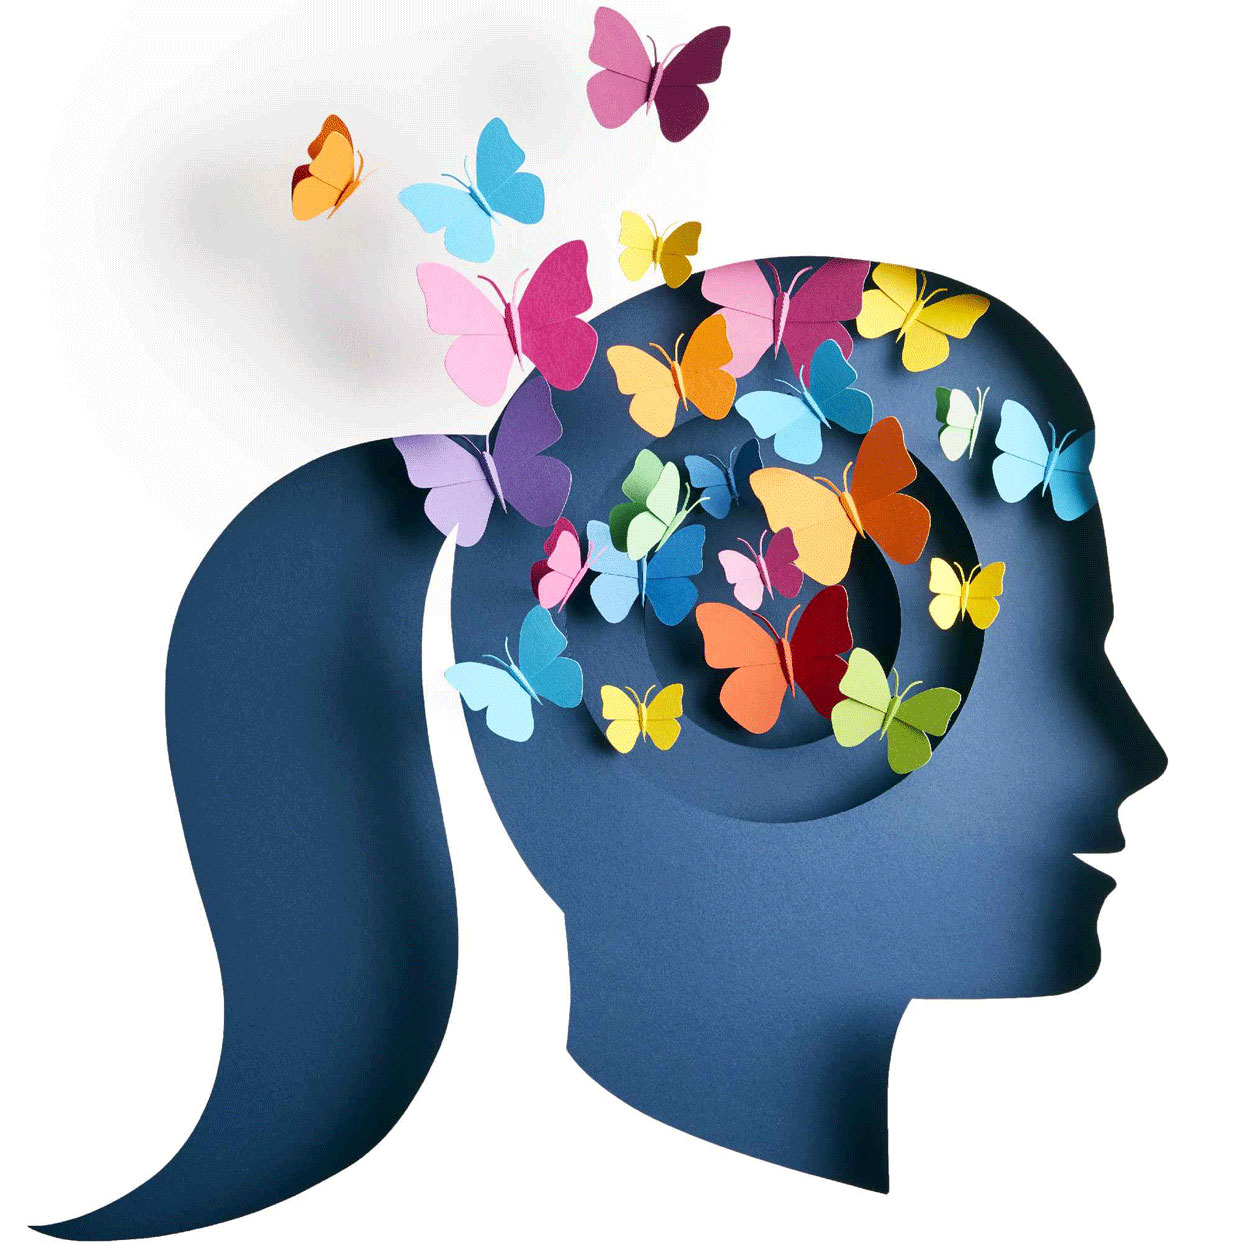 Illustration - silhouette of a woman's profile with colorful butterflies flying out of her brain area